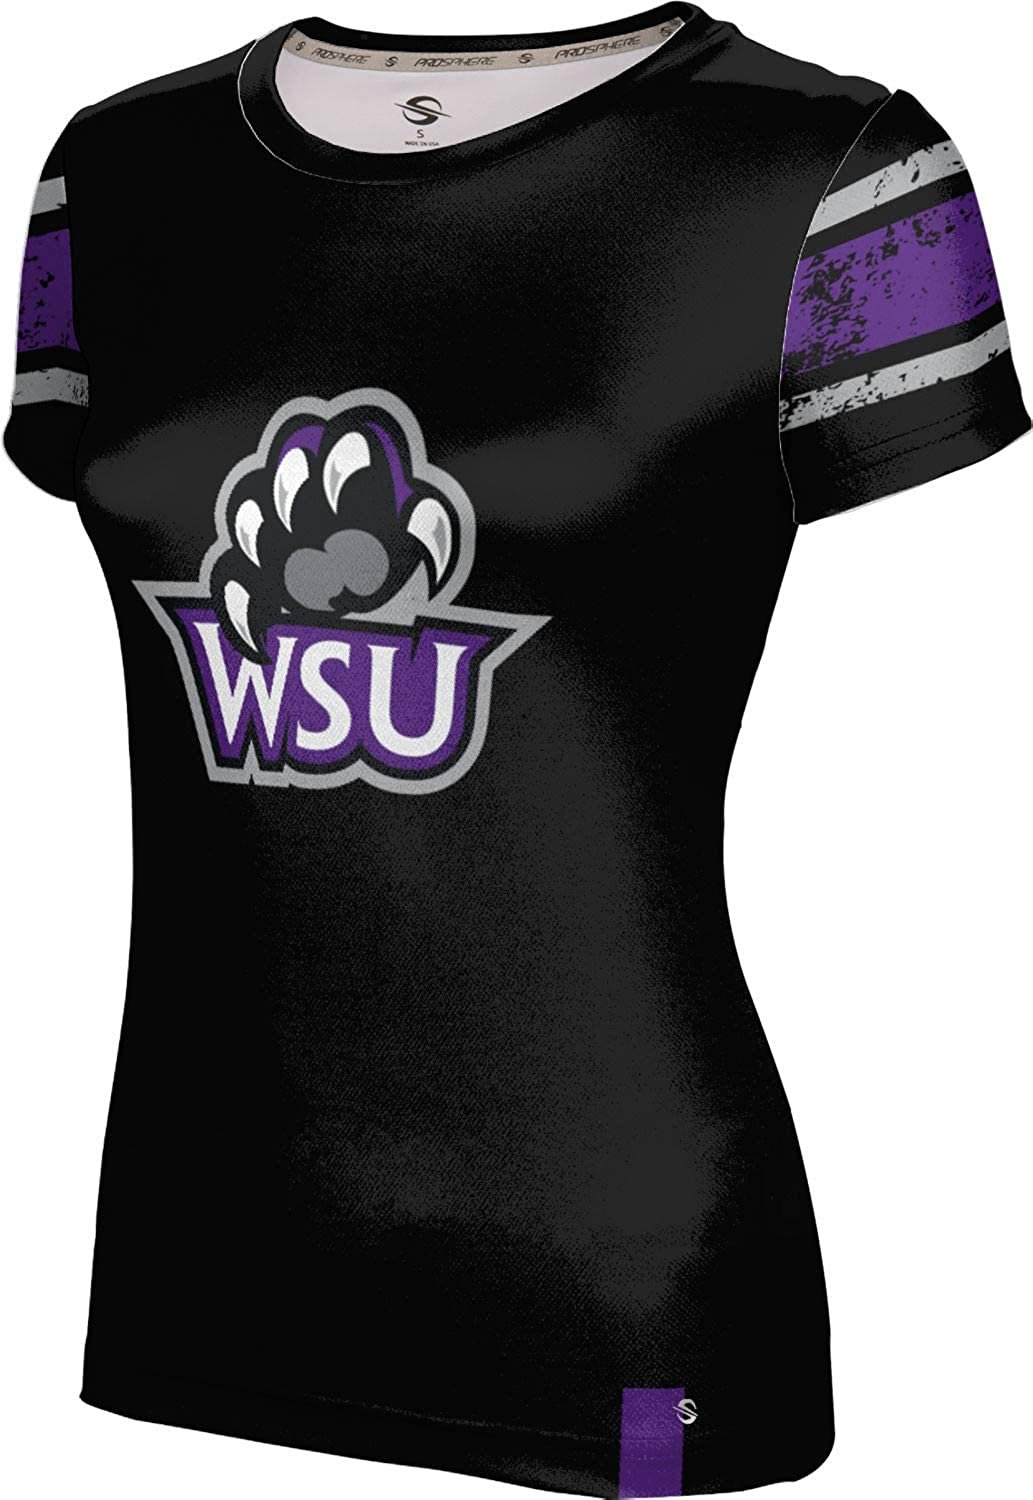 End Zone ProSphere Weber State University Girls Performance T-Shirt